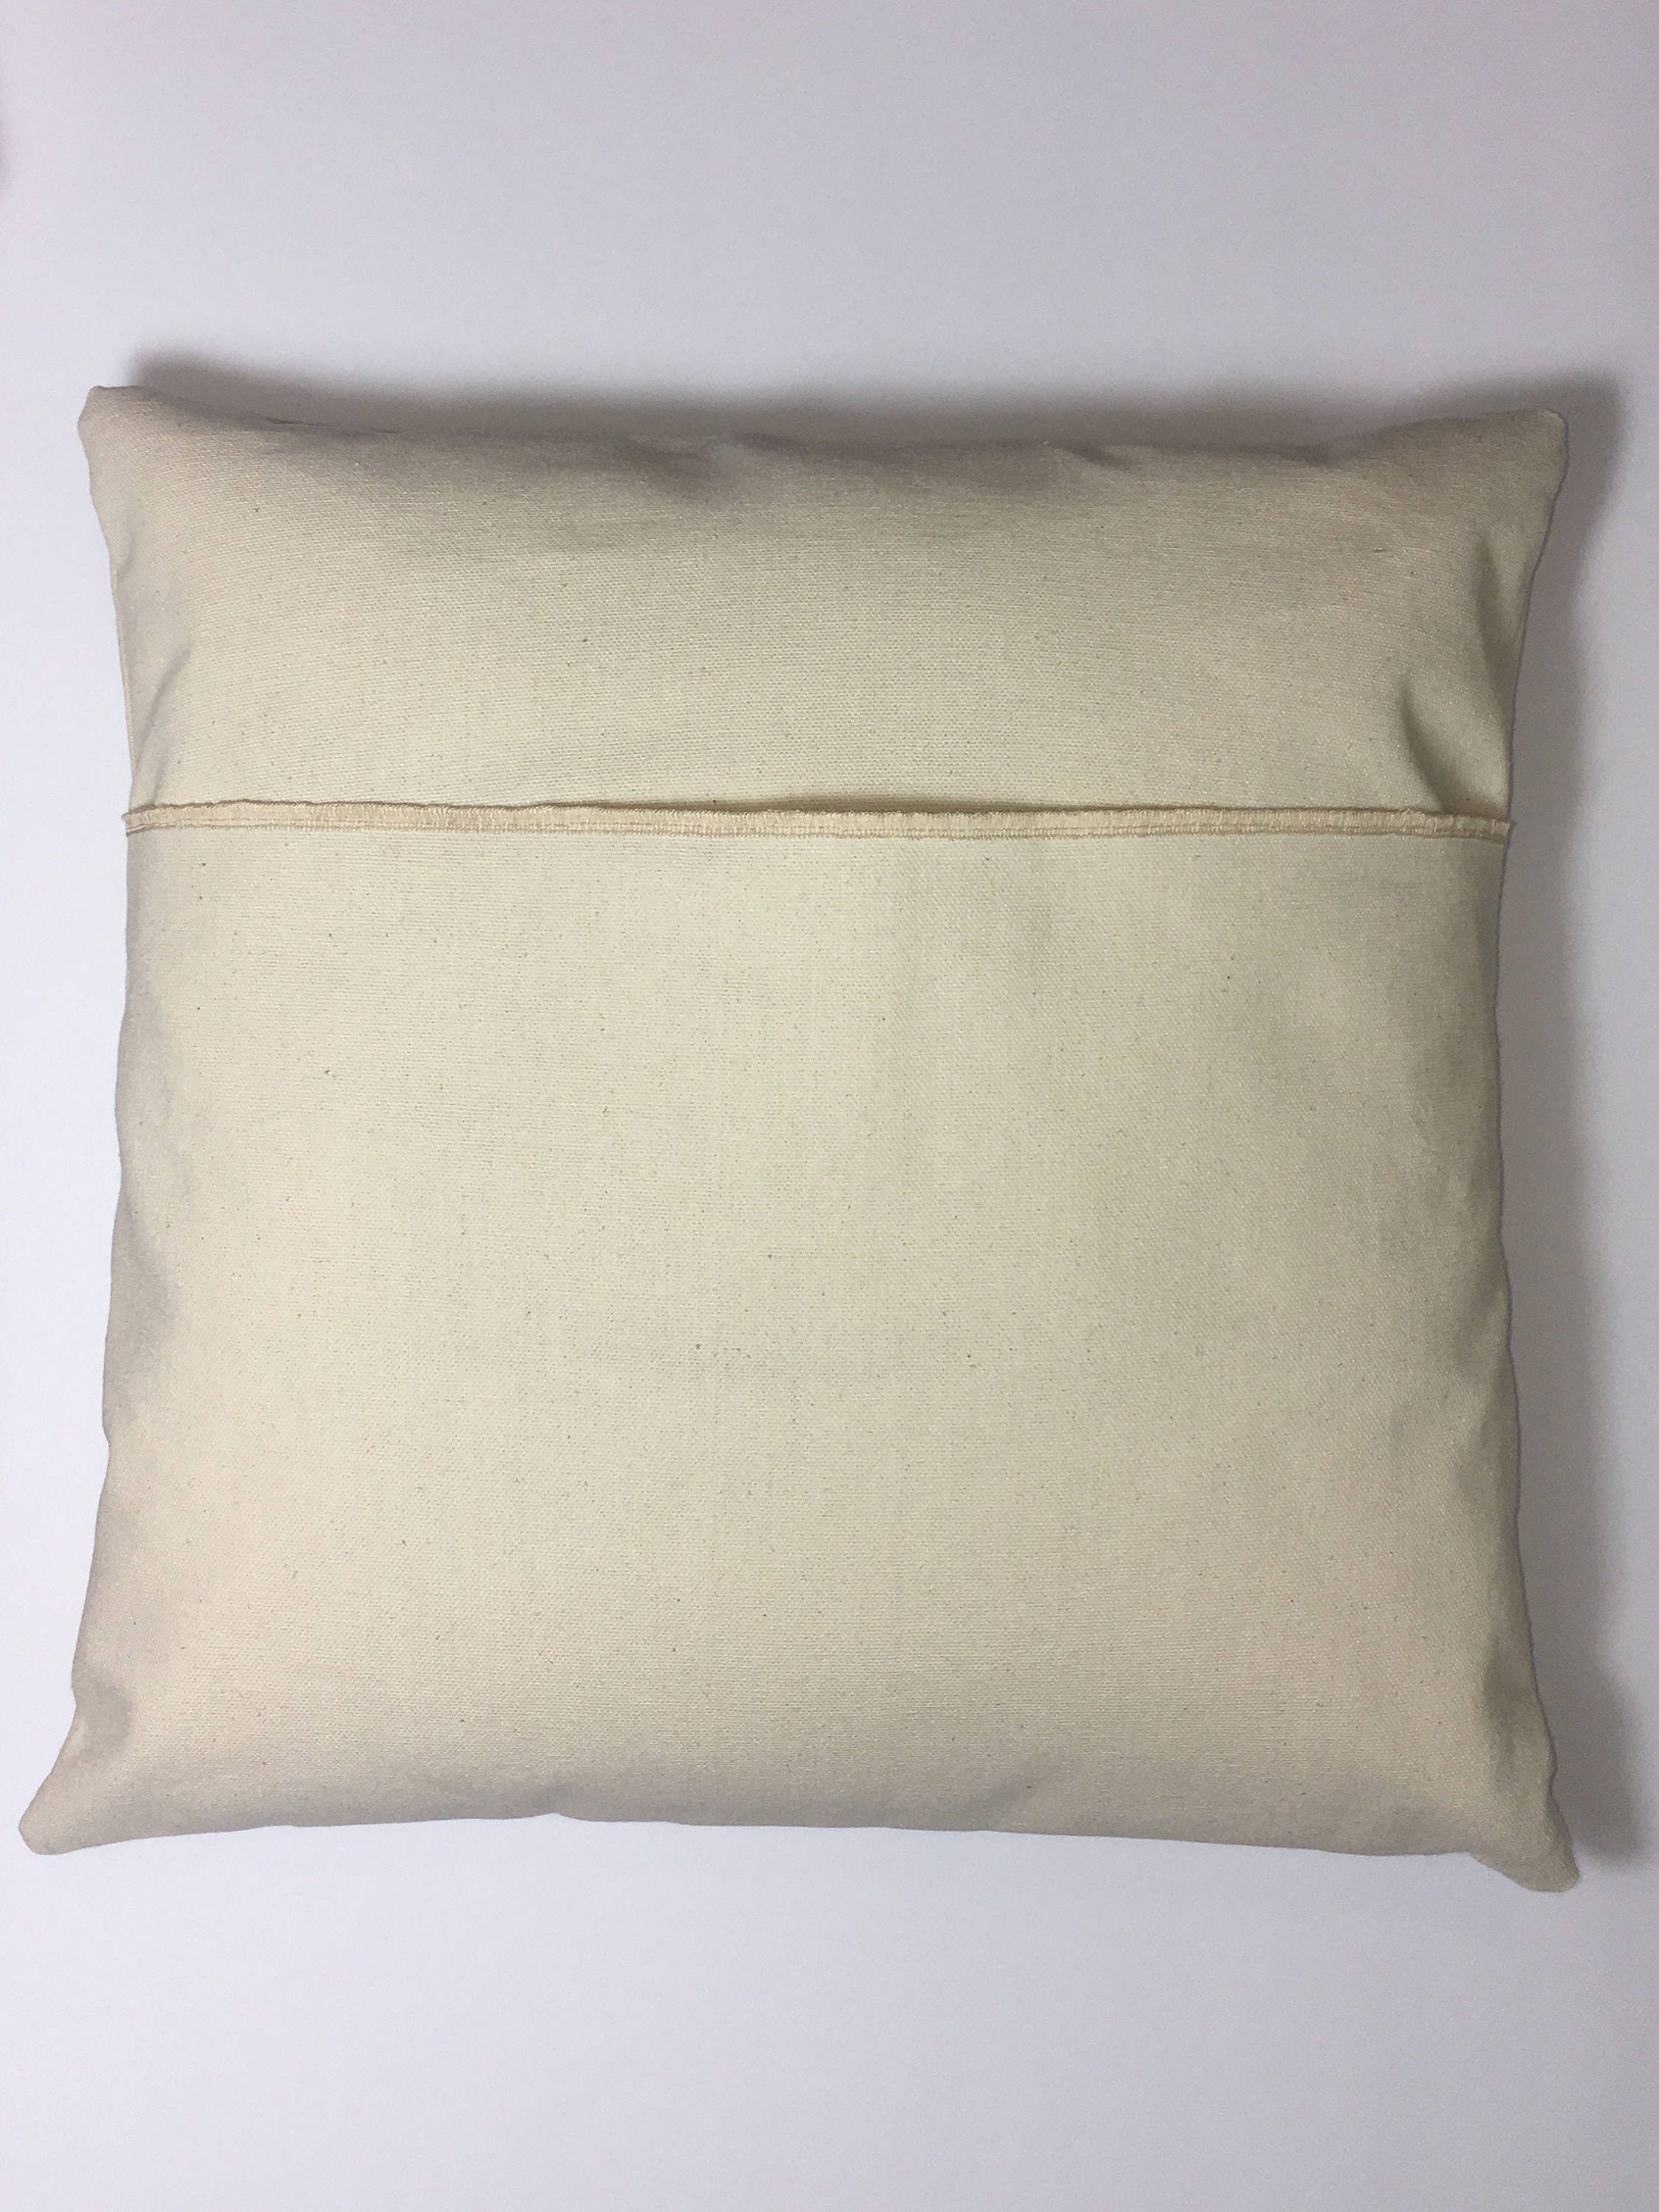 Blank Canvas pillow cover / HTV blanks / blank pillow cover / DIY pillow / canvas pillow cover ...